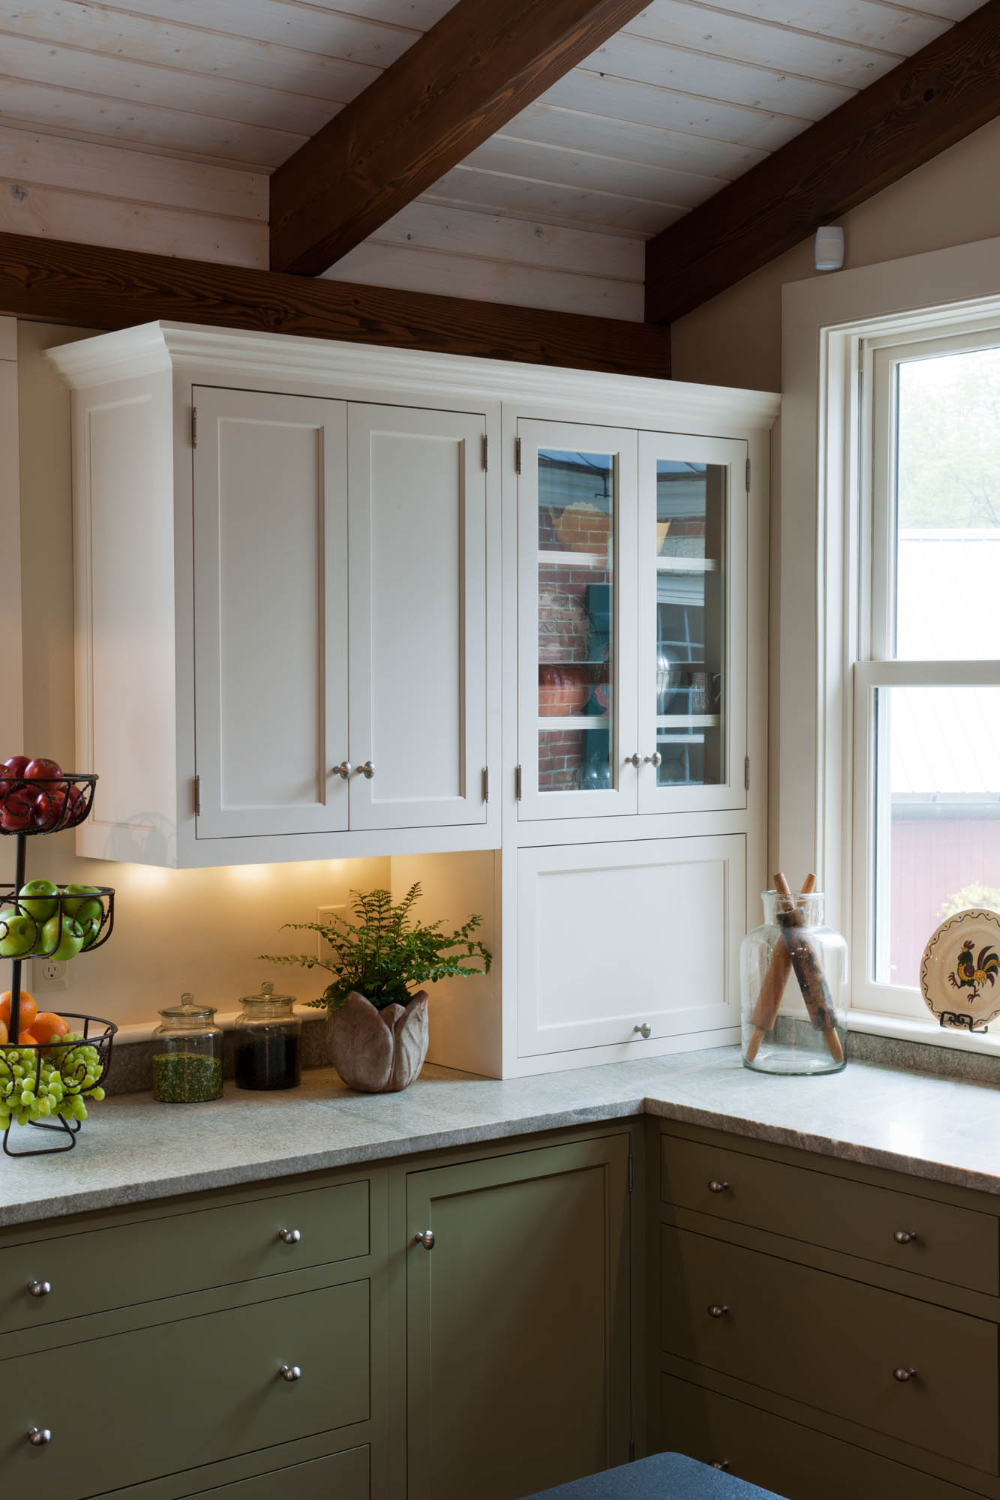 Kitchen Cabinetry Gallery Crown Point Cabinetry In 2020 Kitchen Cabinetry Custom Kitchen Cabinets Kitchen Inspirations